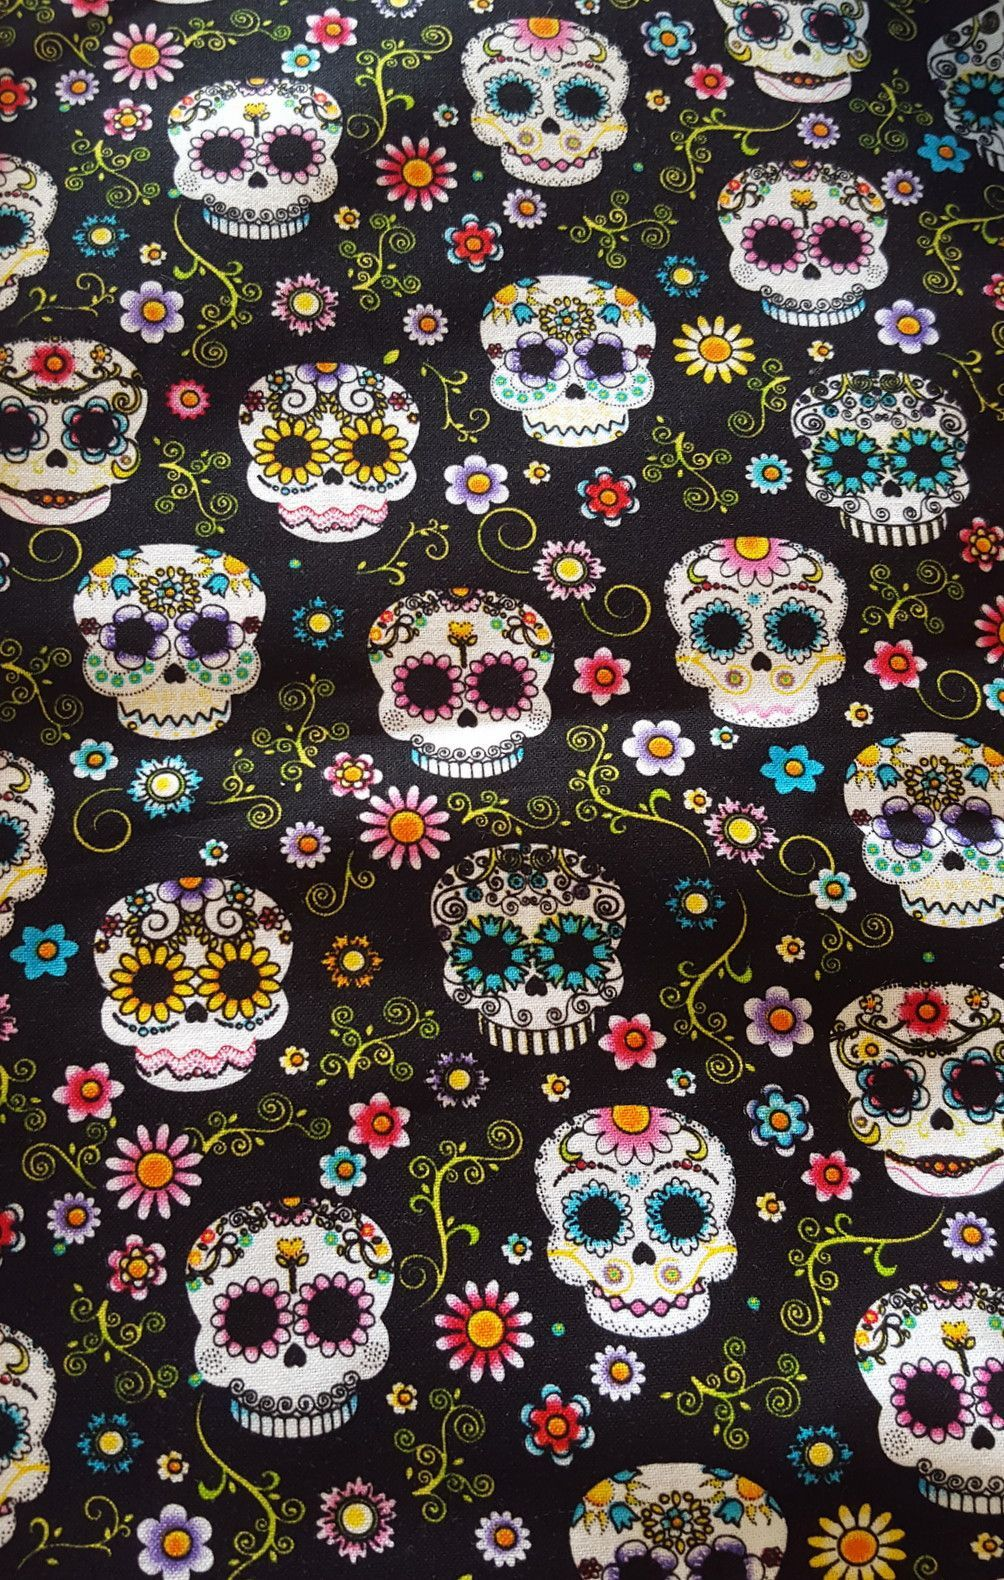 SALE 100/% Cotton Fabric Colourful Candy Skulls Mexican Paisley